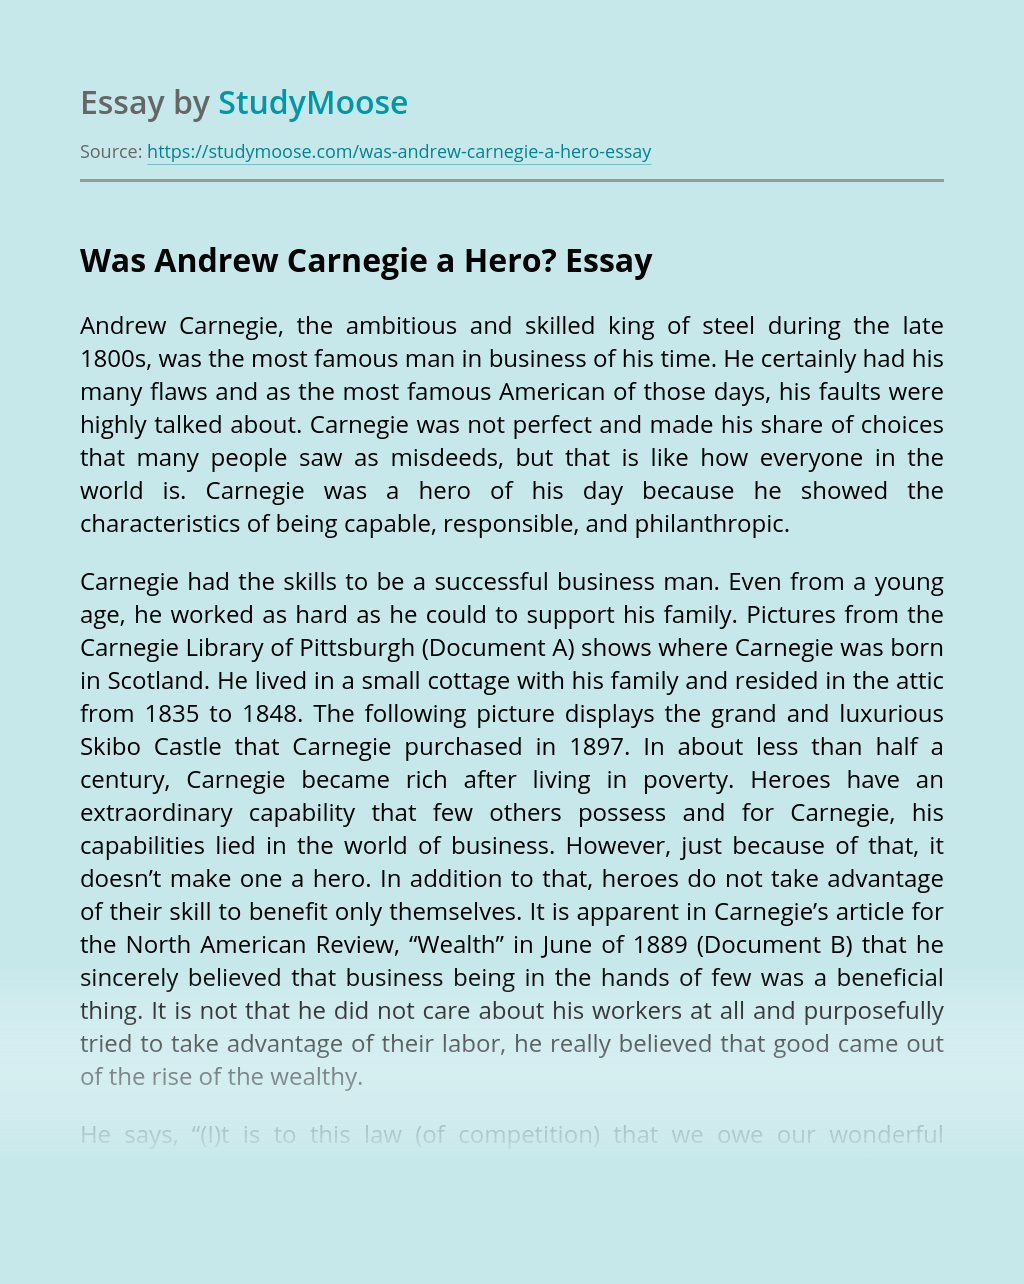 Was Andrew Carnegie a Hero?